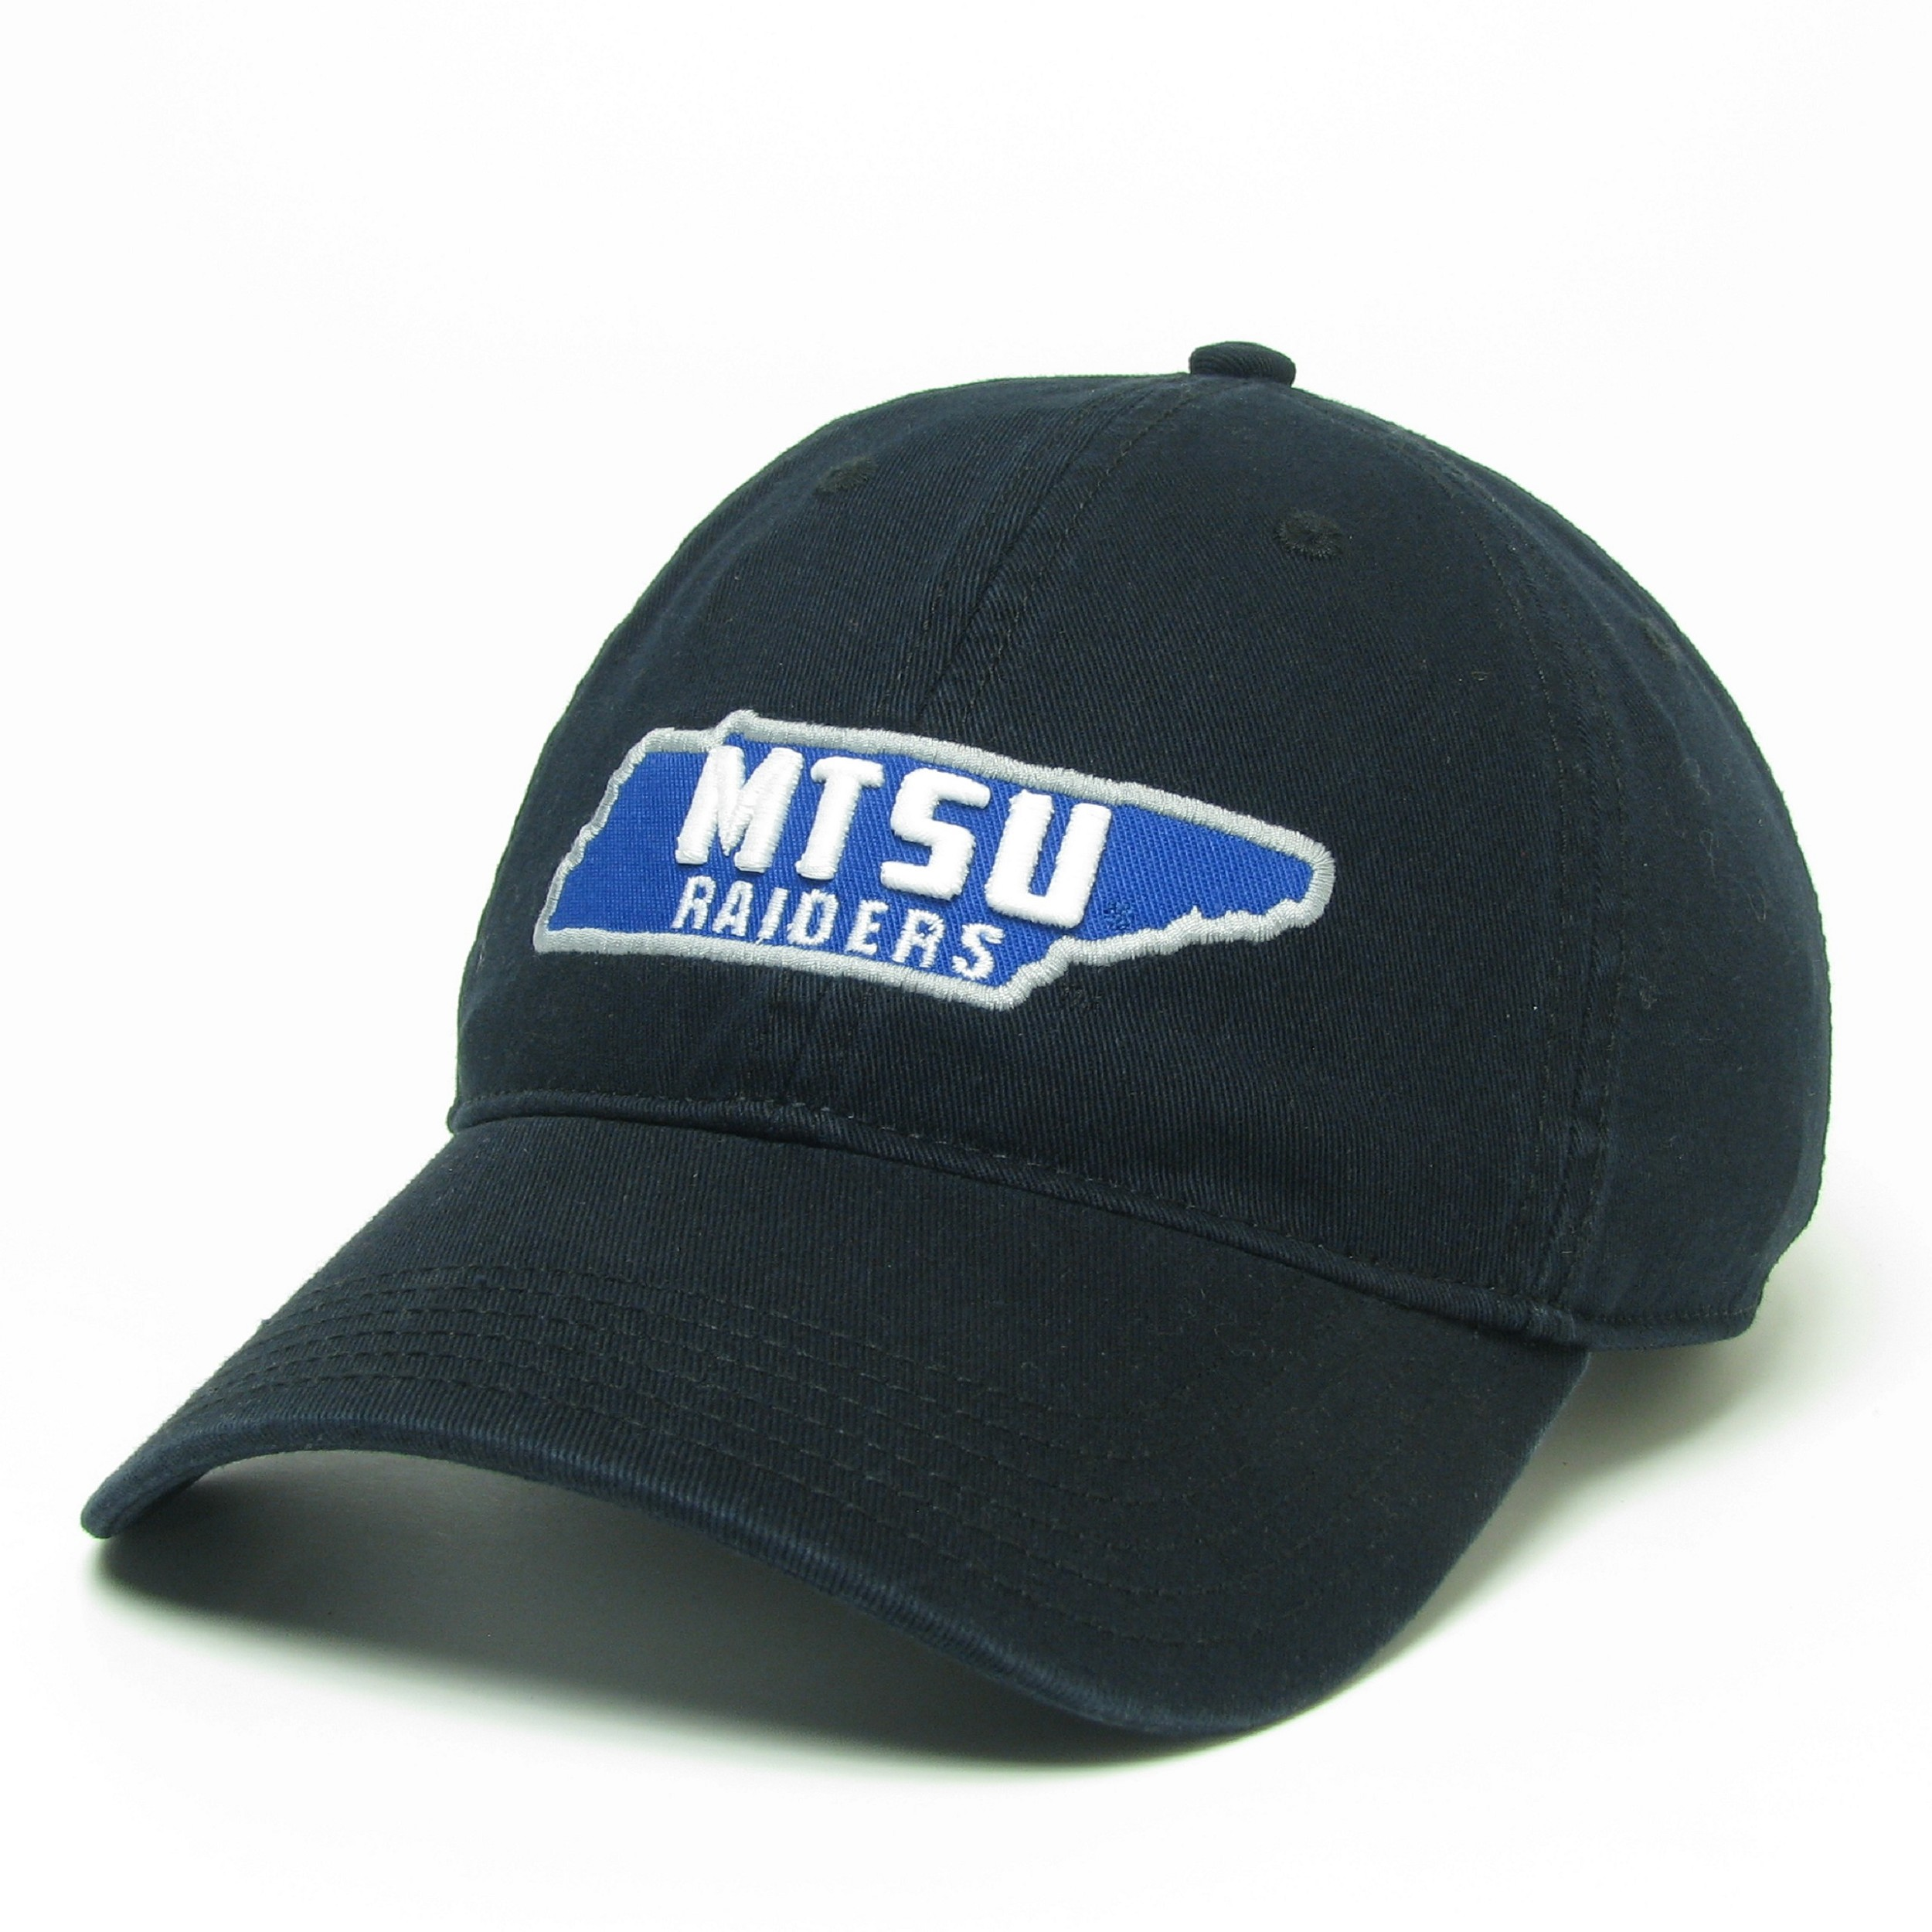 MTSU Raiders State Outline Relaxed Twill Hat